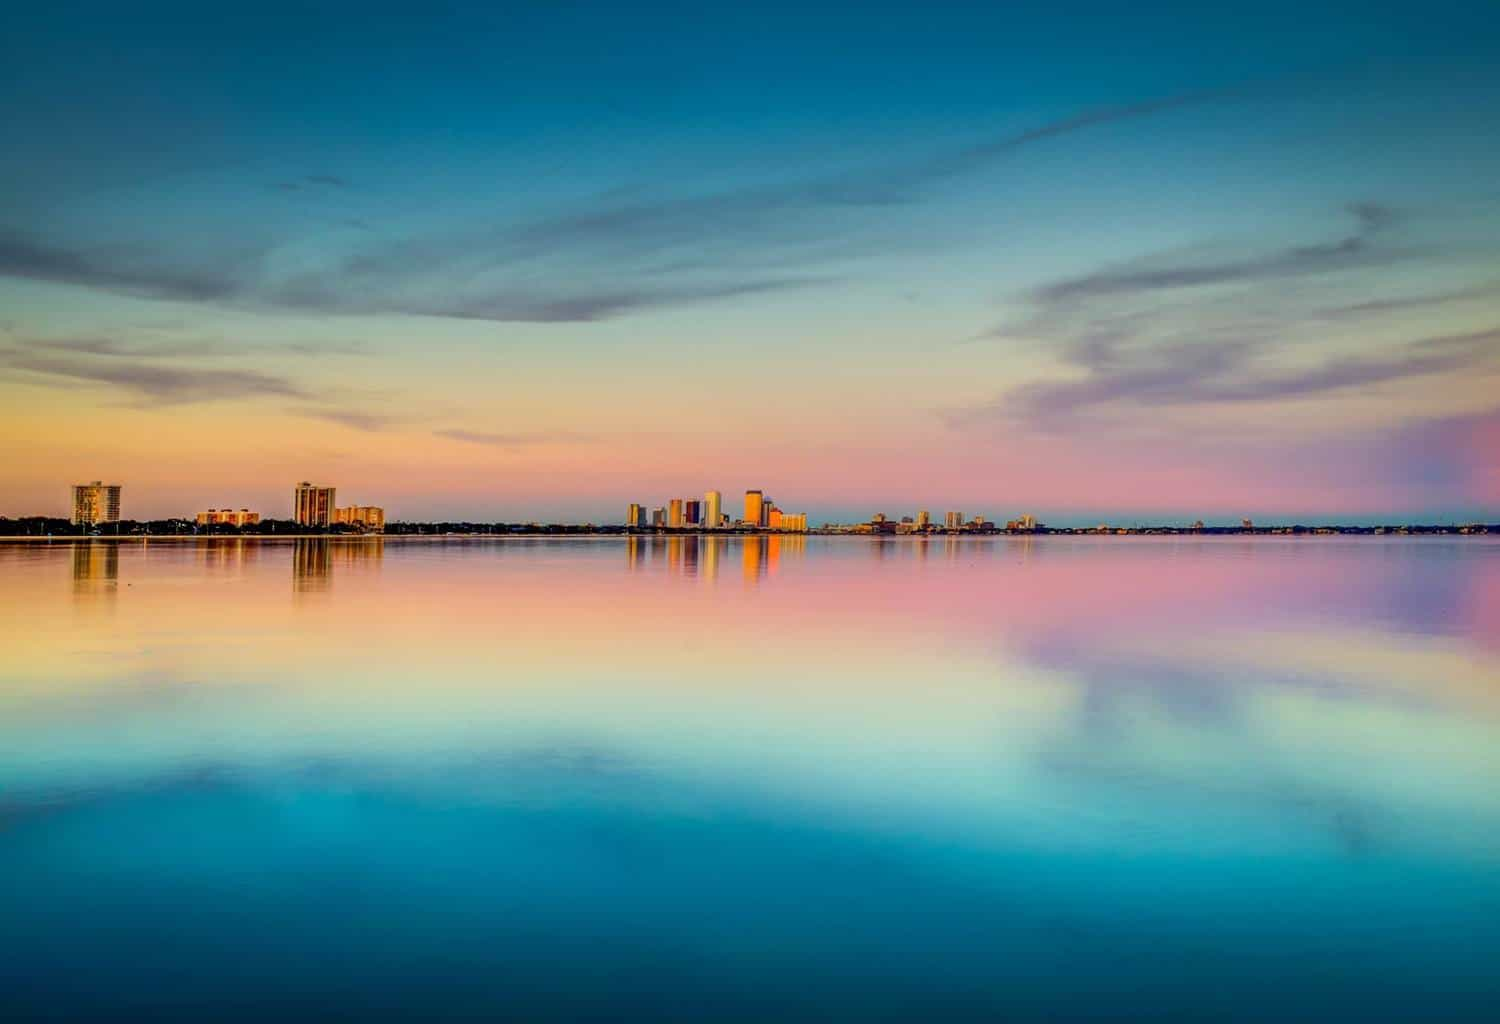 Cotton Candy Sunset - Tampa, Fl  Taken on Bayshore Blvd looking at the Tampa Skyline in the distance.  1/20/16